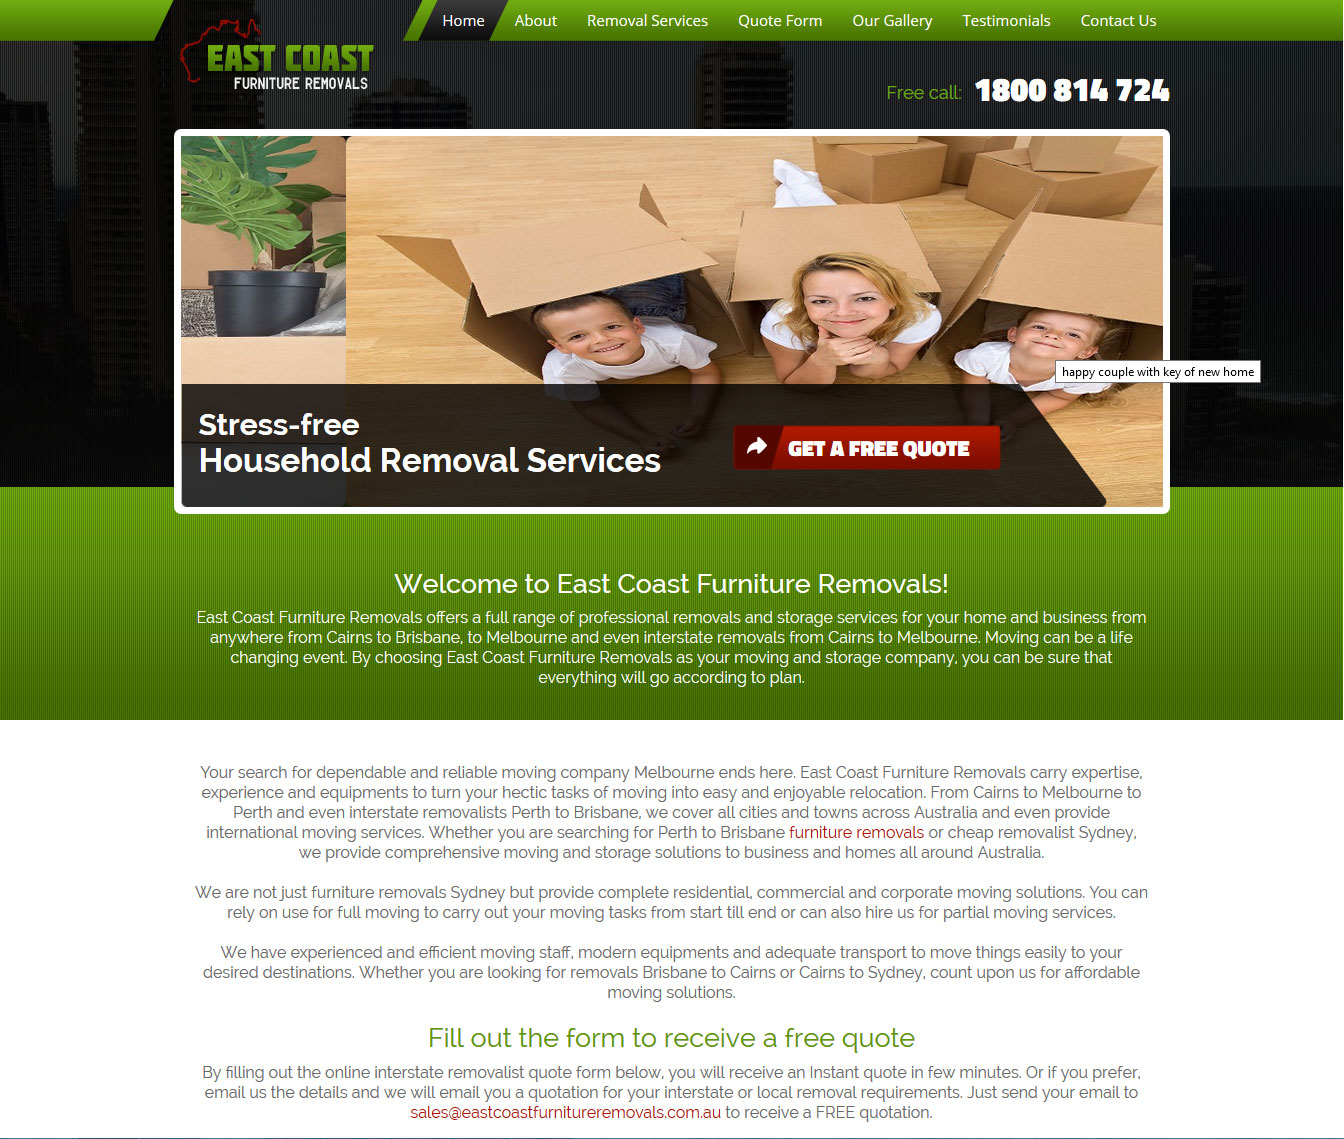 East Coast Furniture Removals